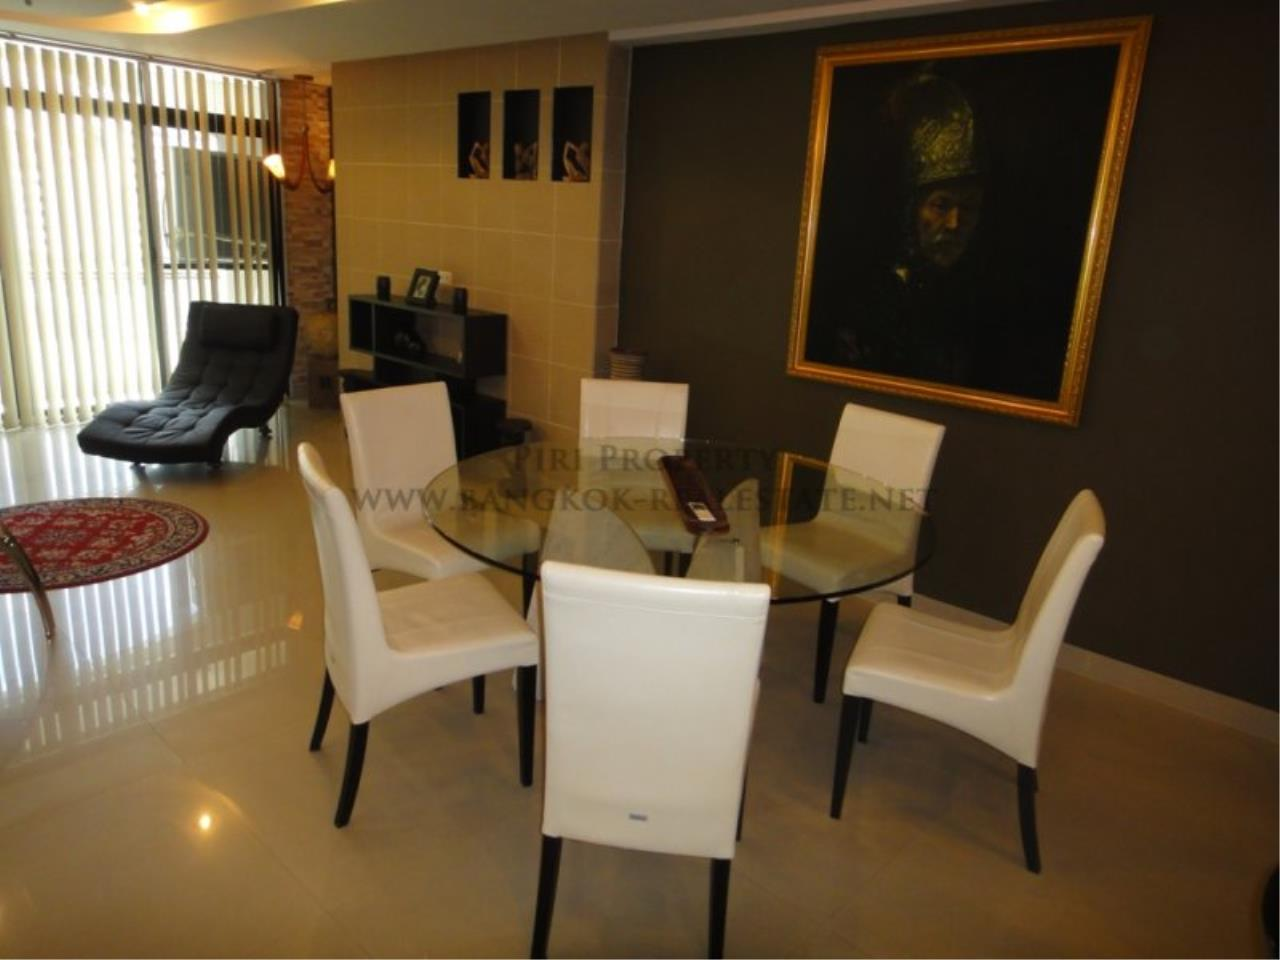 Piri Property Agency's Baan Phrom Phong - 2 Bedroom Condo for Sale - RENOVATED! 4